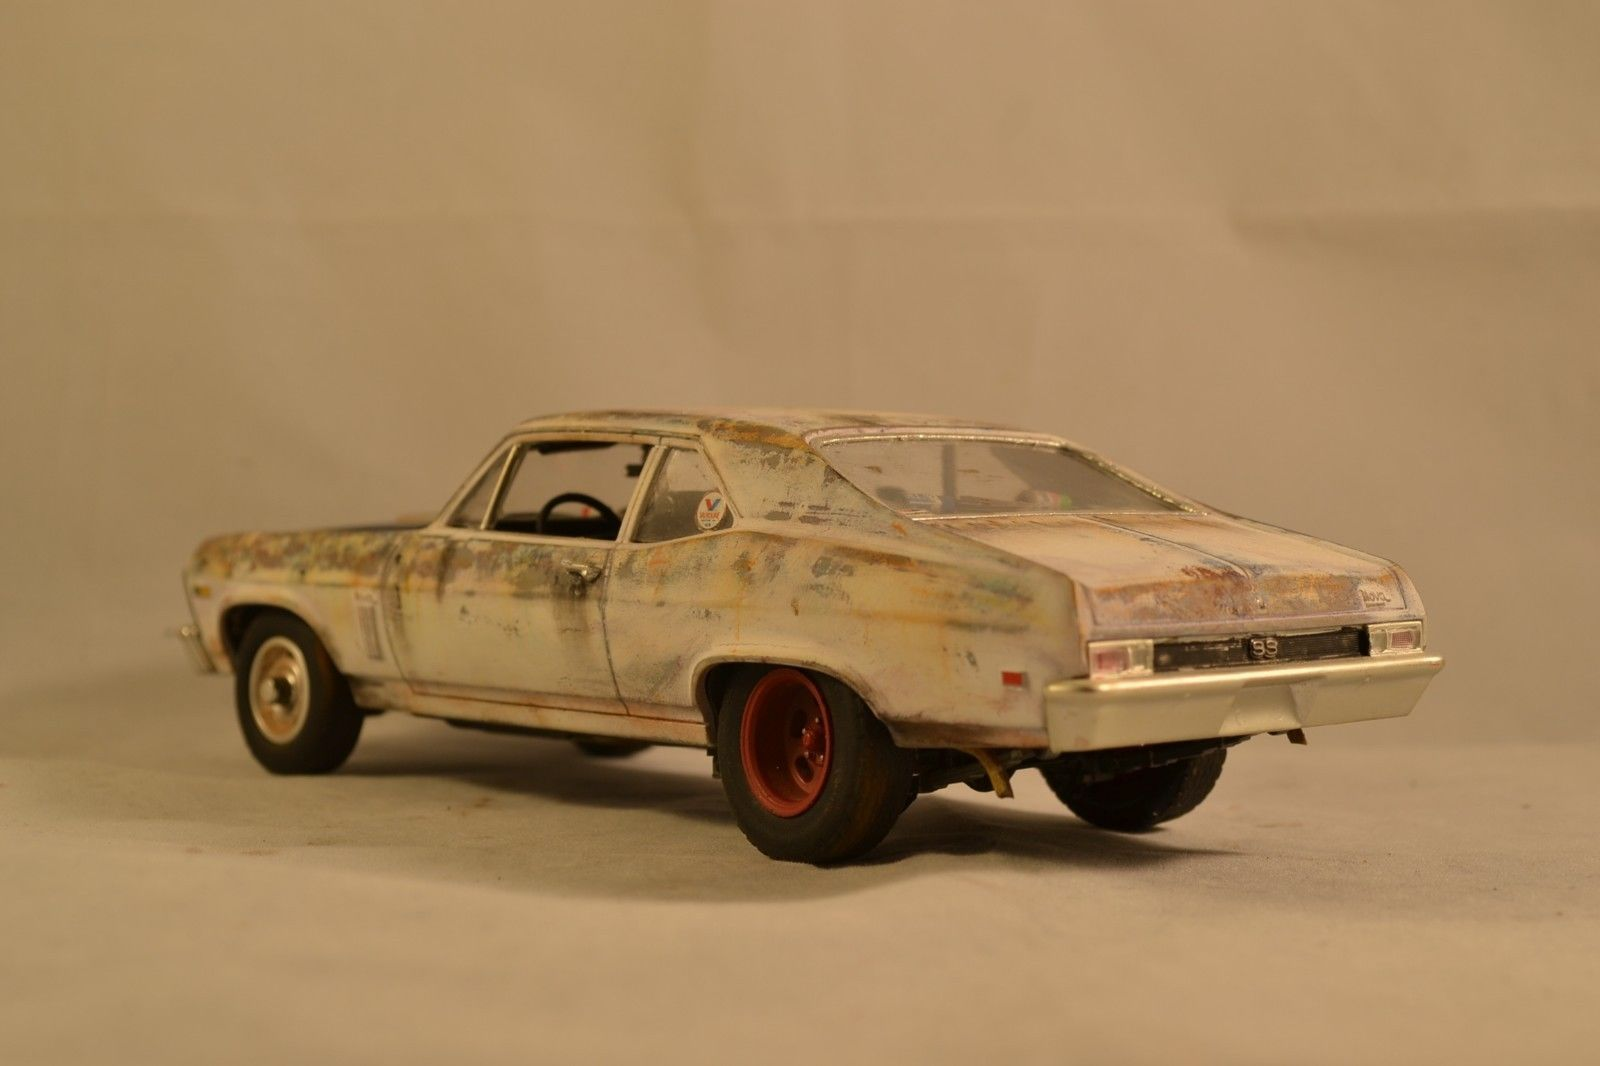 Pro Built 1972 72 Chevy Nova Weathered Rusted Junker Adult Super